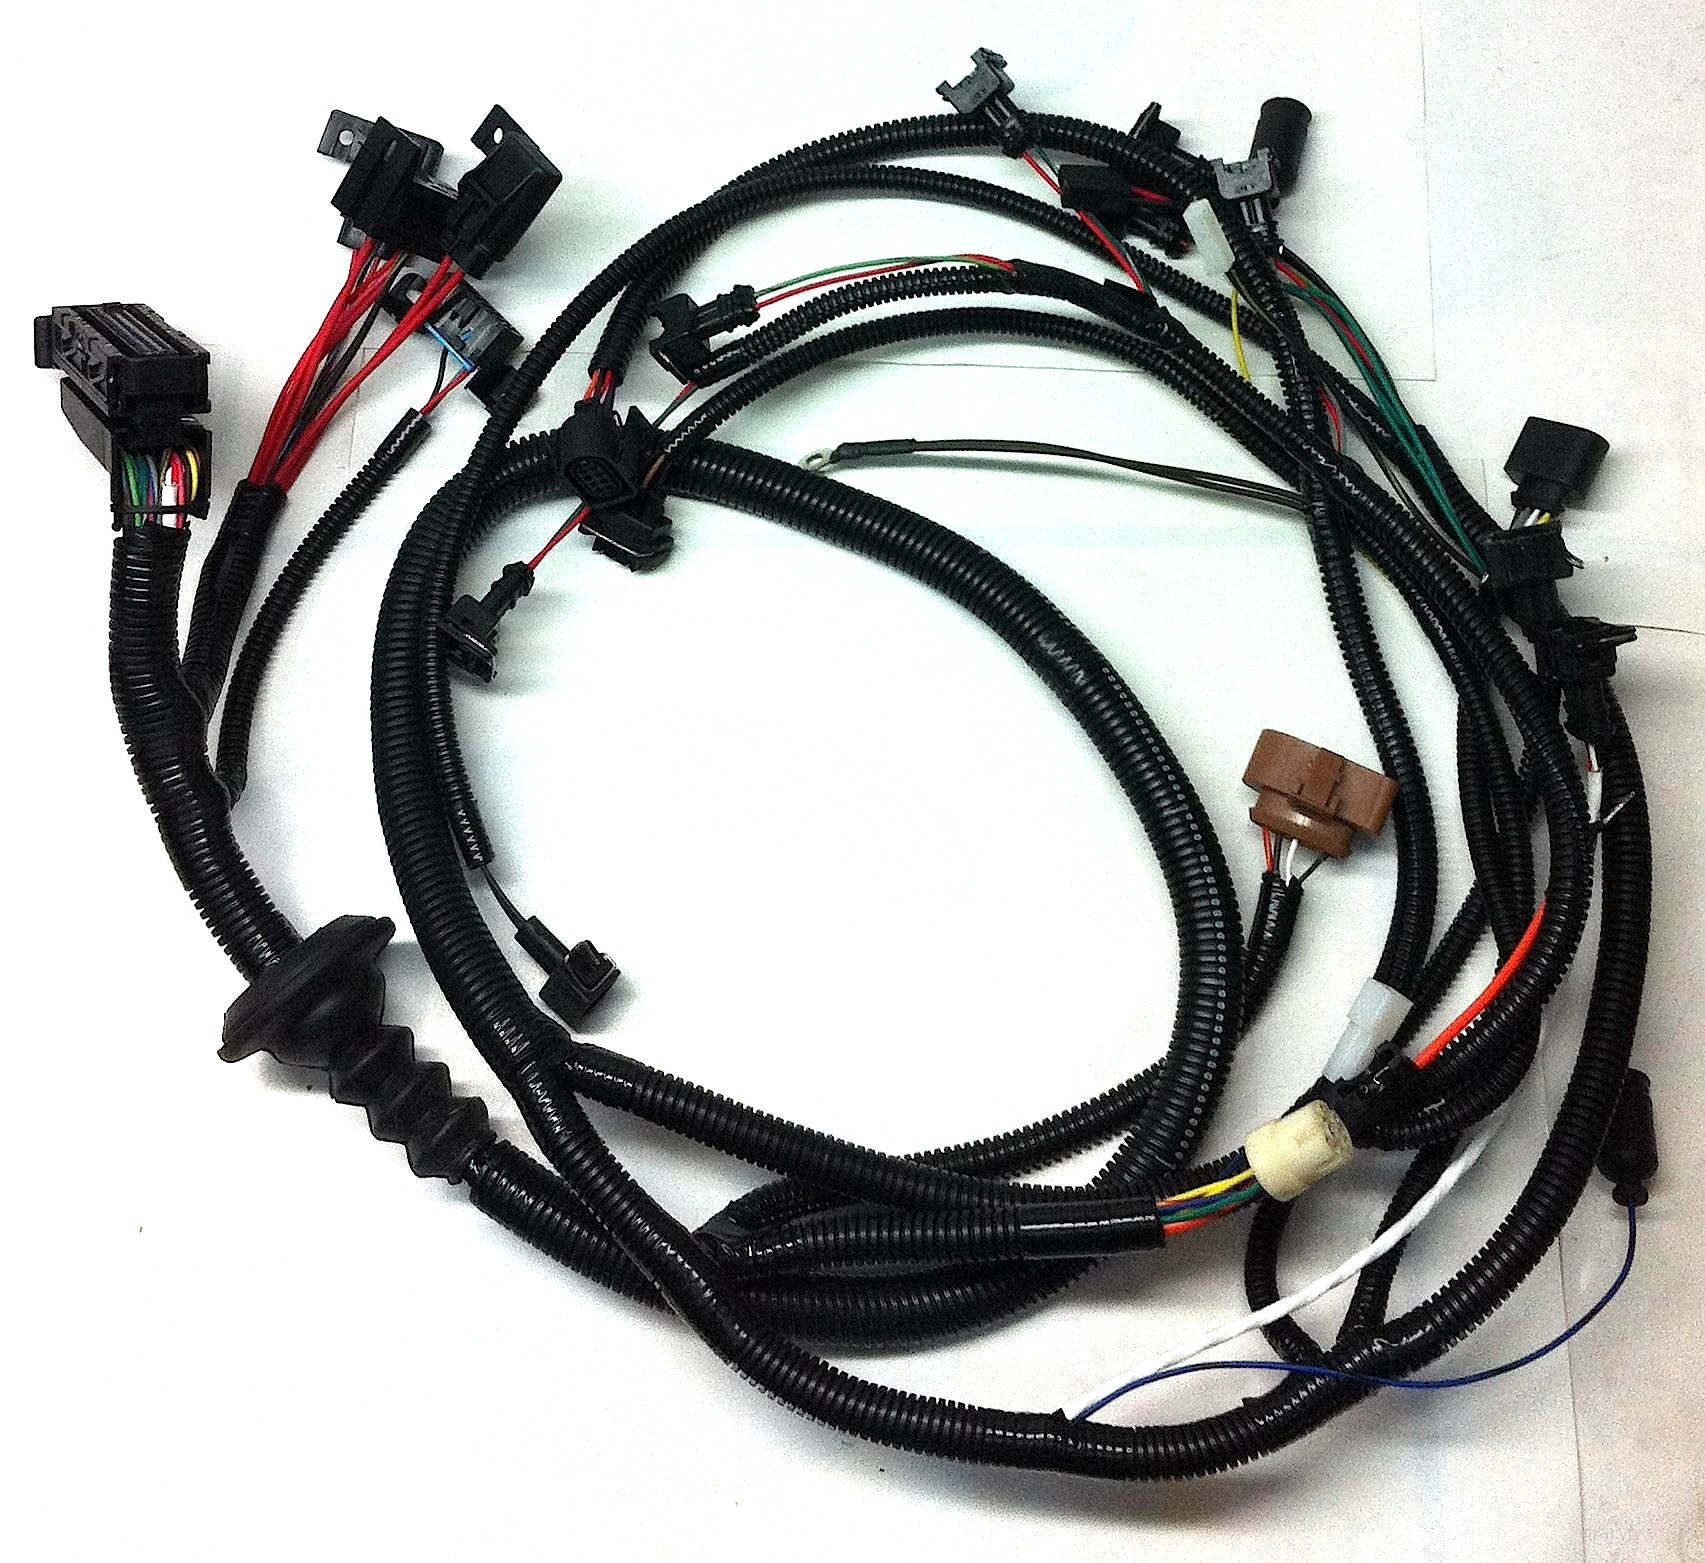 2lr tiico conversion wiring harness foreign auto supply inc rh foreignautosupply com wiring harness diagram wiring harness diagram